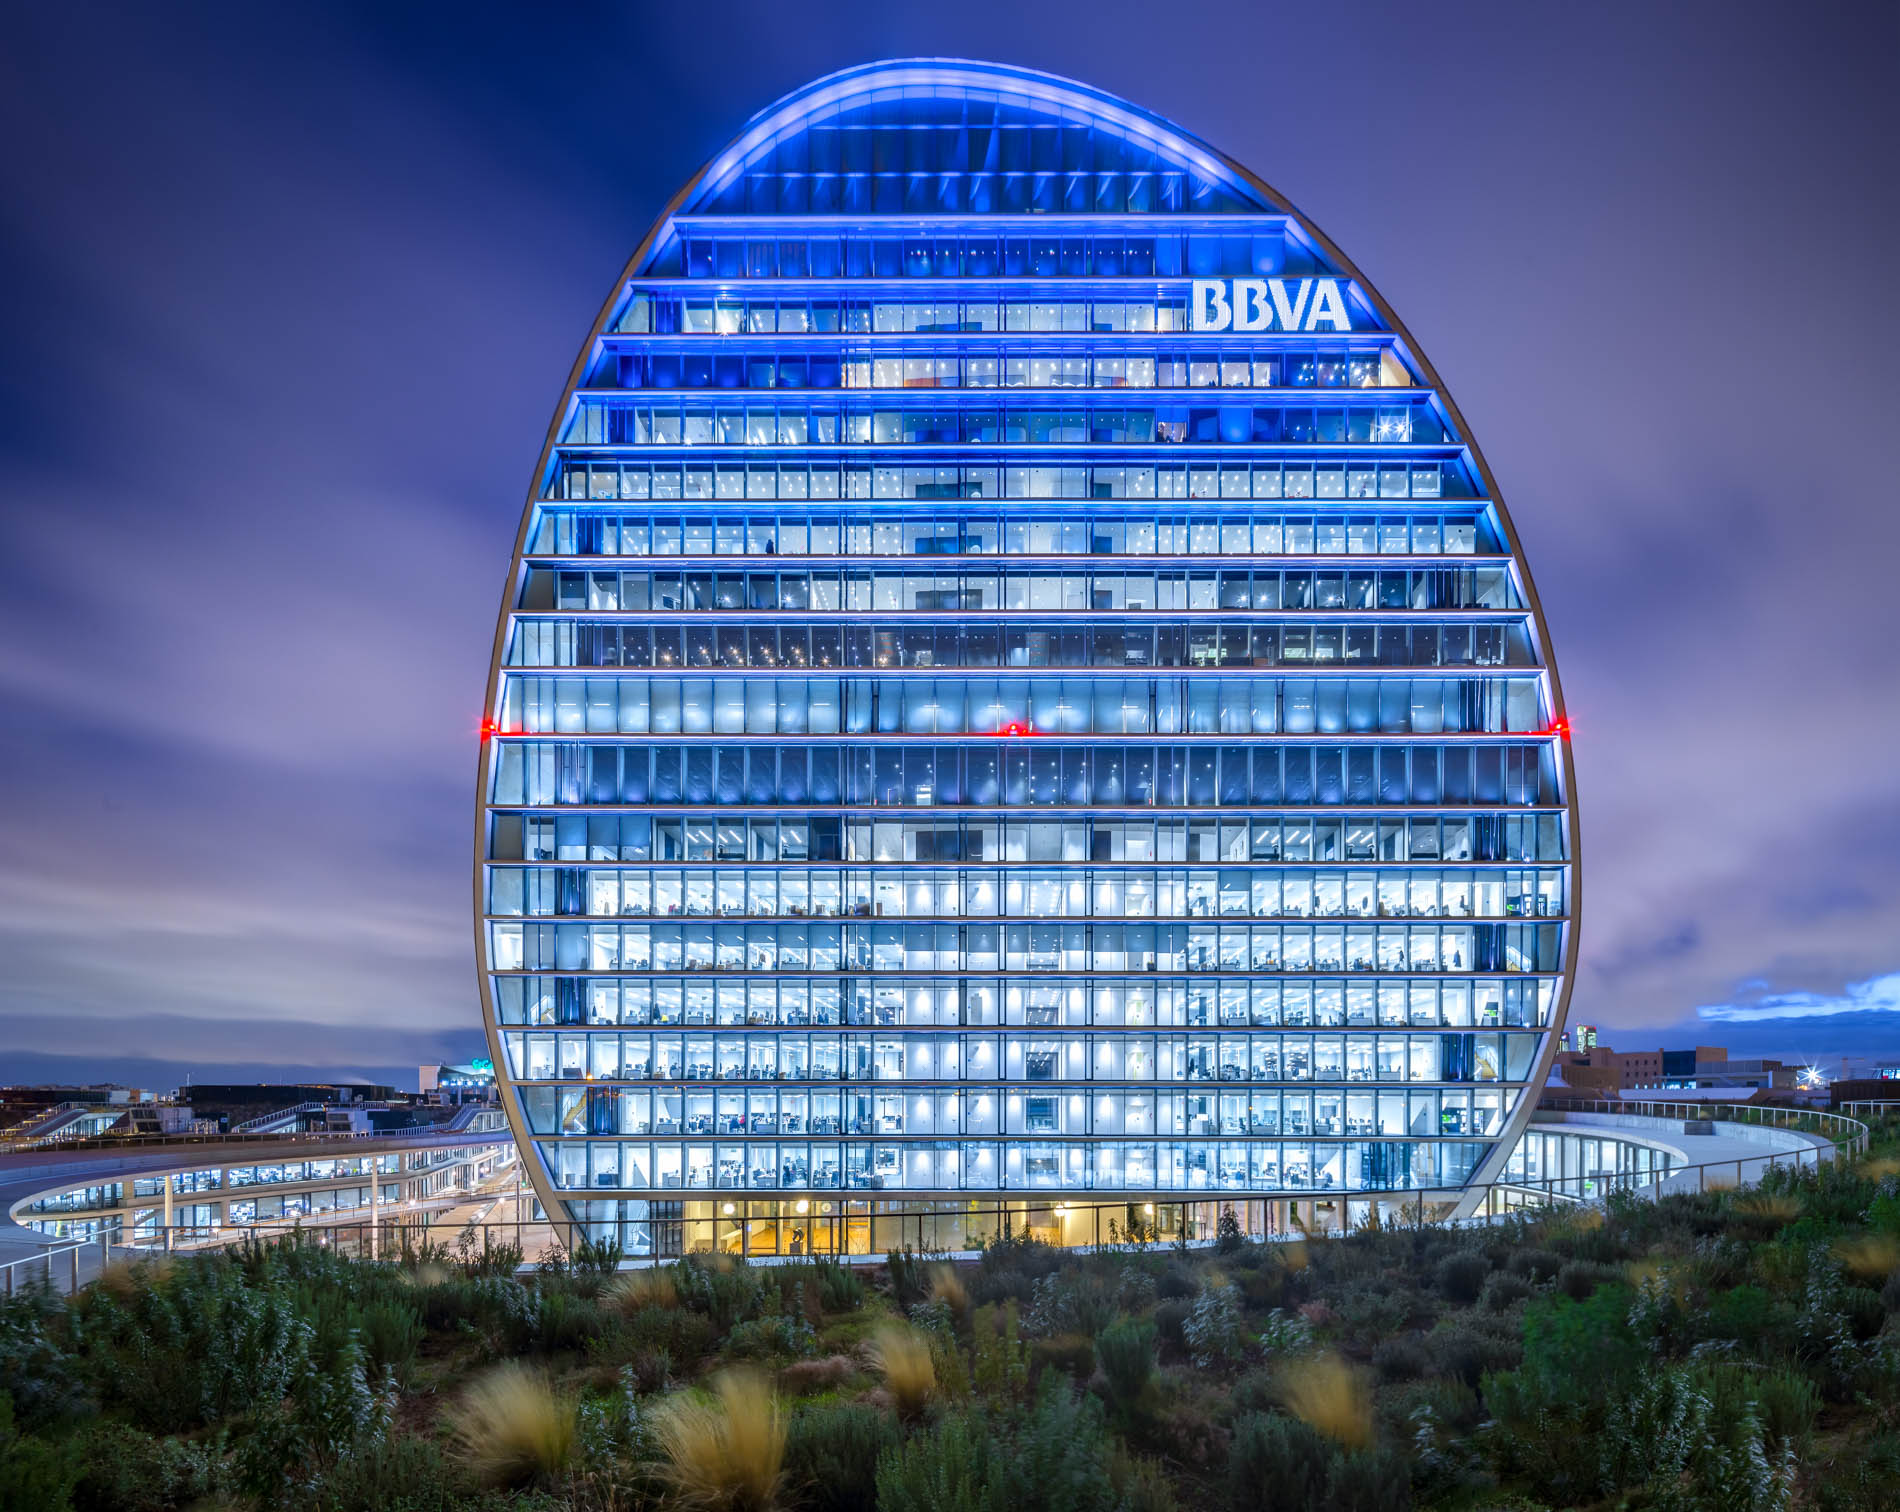 https://accionistaseinversores.bbva.com/wp-content/uploads/2017/05/BBVA-HEADQUARTERS-MADRID-149-1.jpg